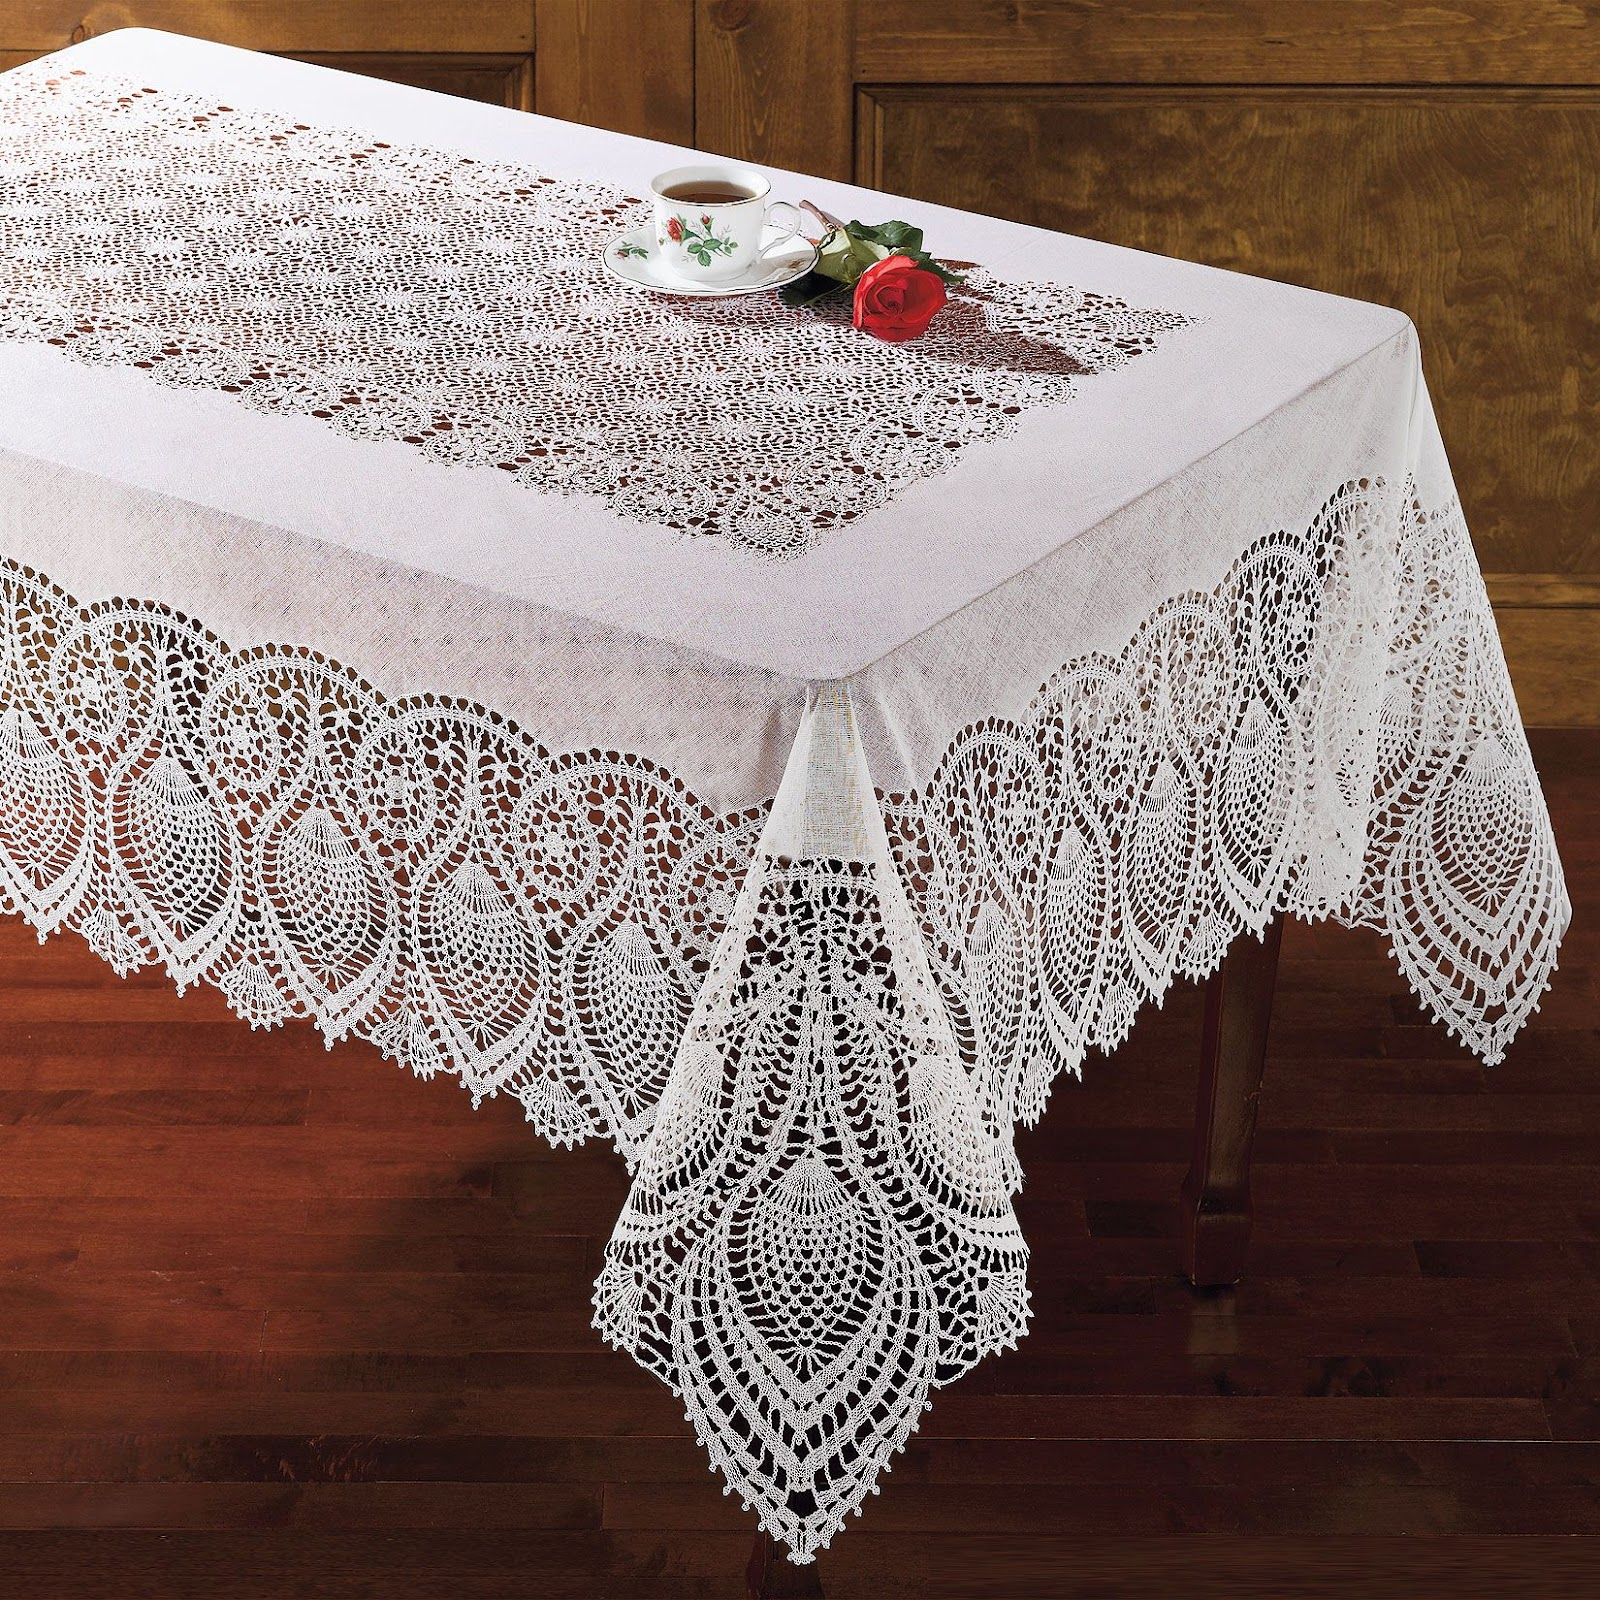 Dr House Cleaning: How to Clean a Lace Tablecloth